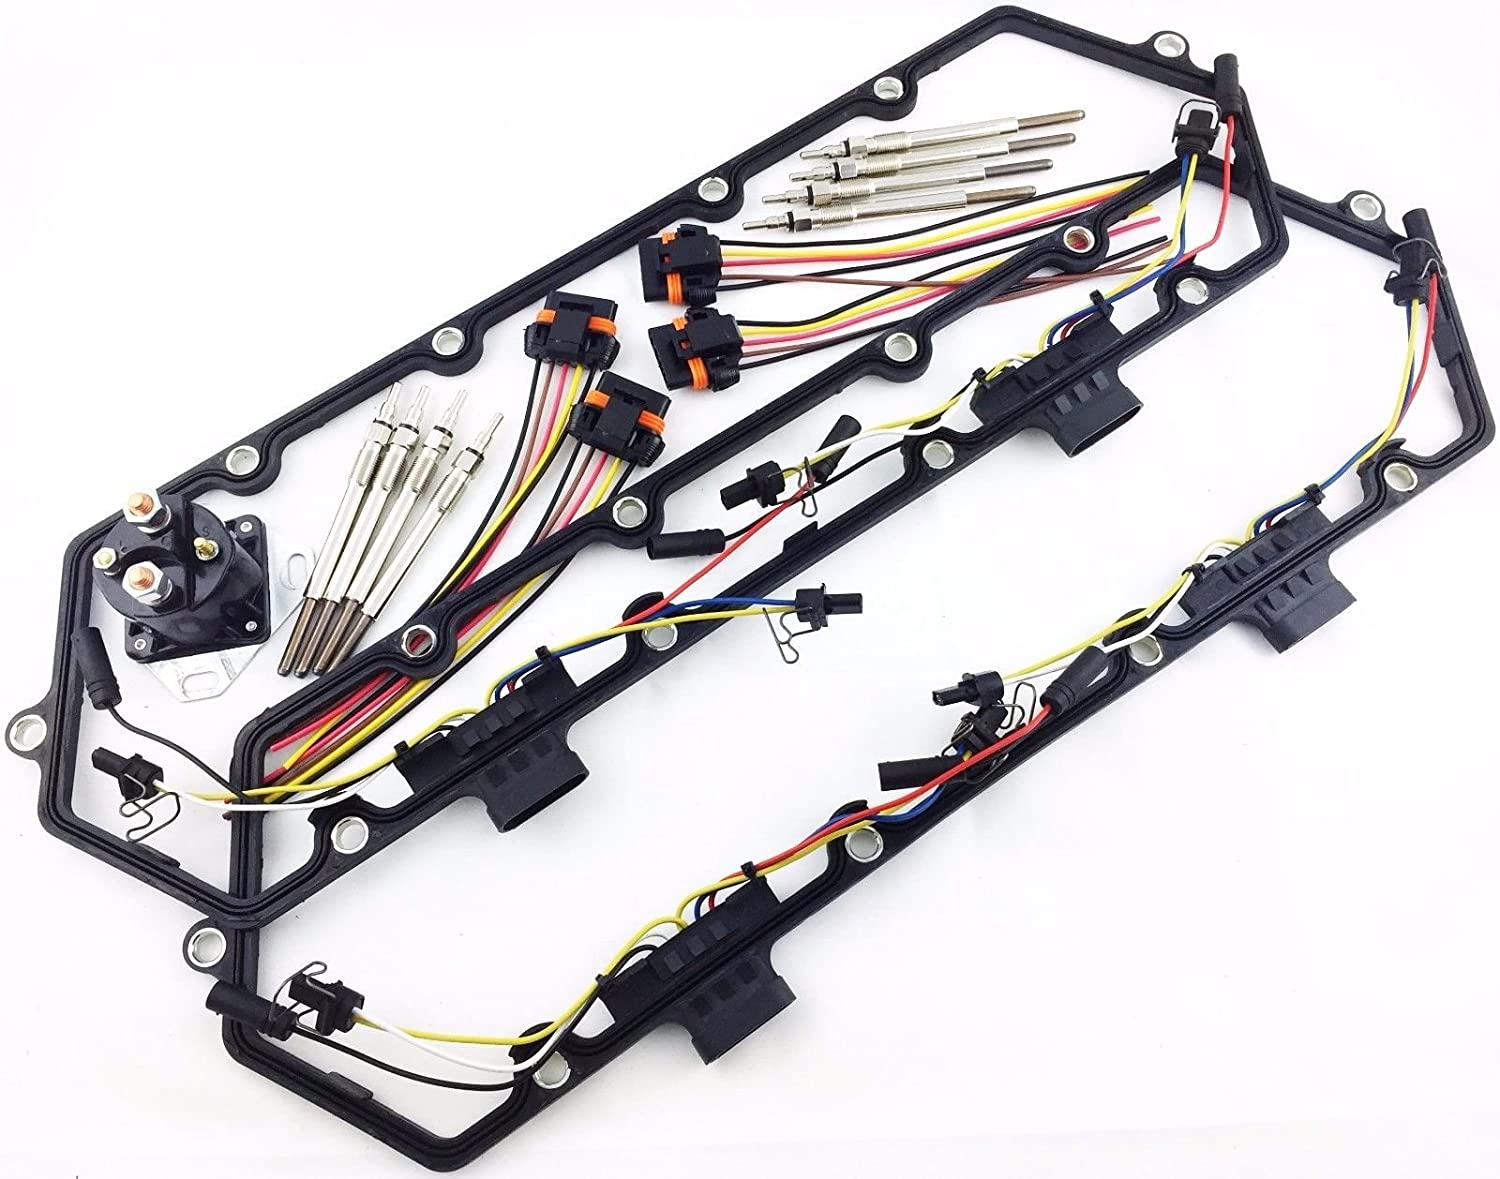 Amazon.com: 94-97 ECONOLINE DIESEL E250 E350 E450 7.3 GLOW PLUG SET GASKETS  HARNESS RELAY SD: Automotive